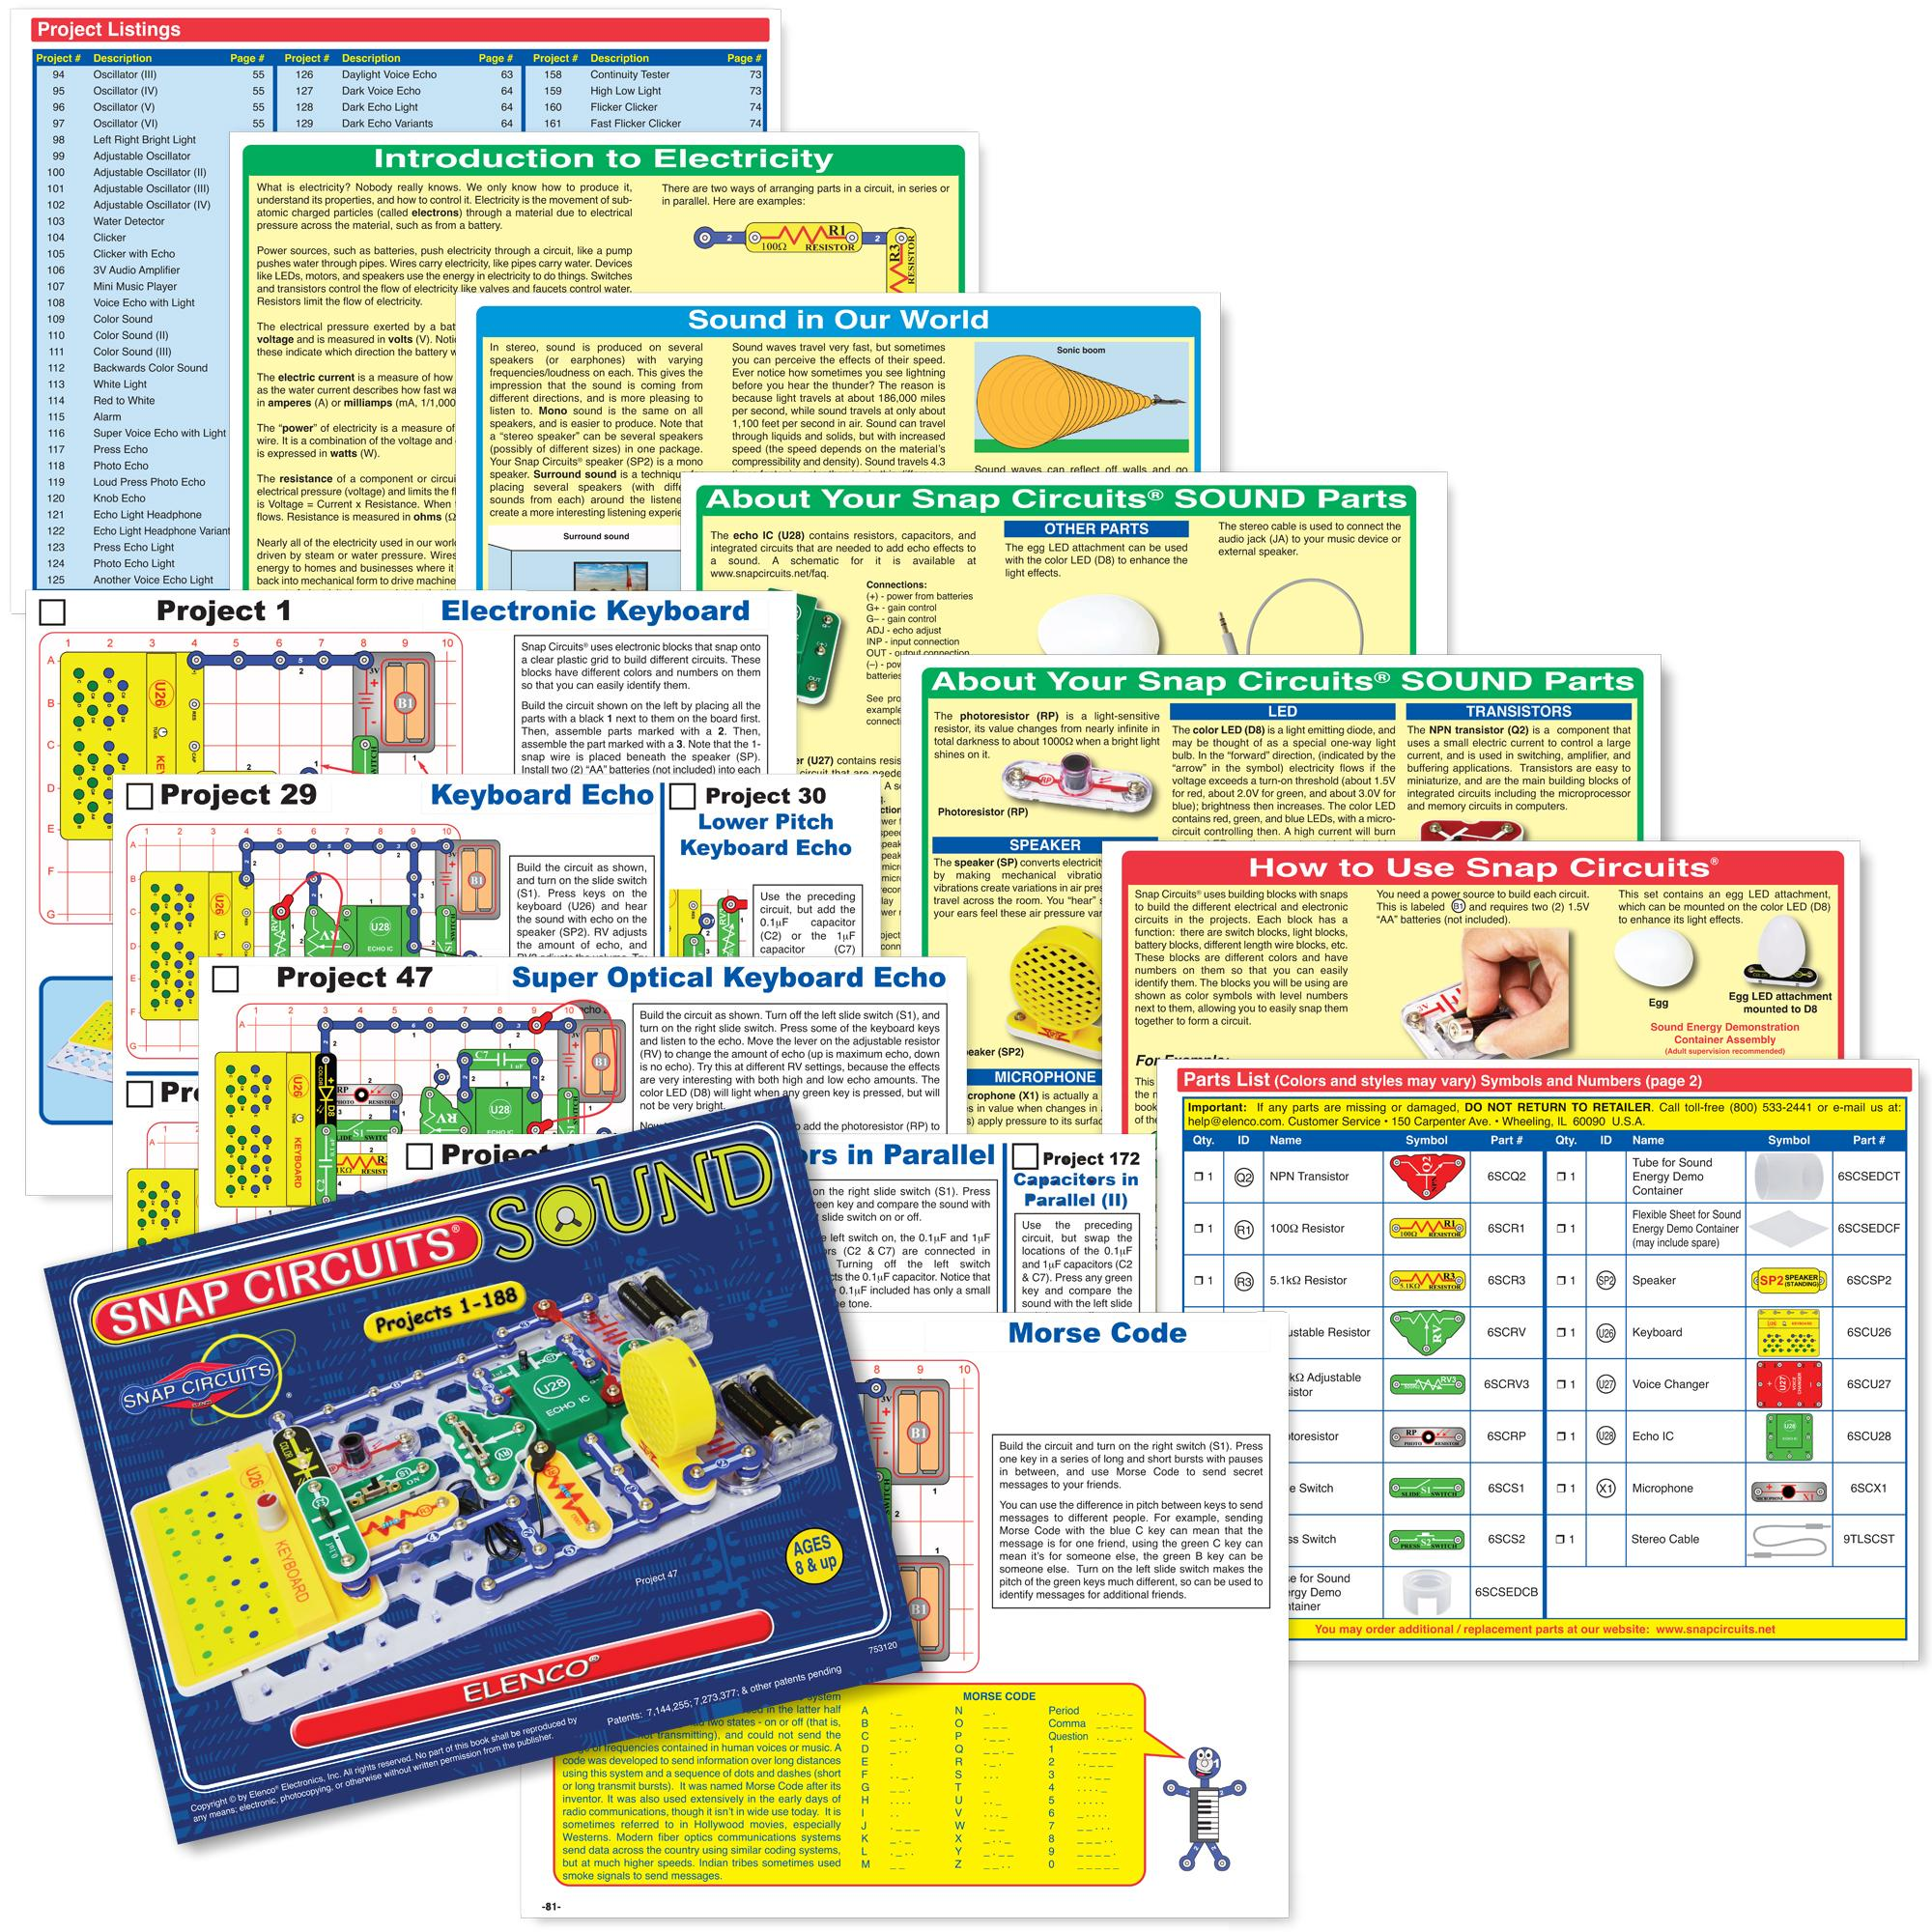 Snap Circuits Beginner Manual Everything About Wiring Diagram Elenco Scl 175 Light Kids Learn Electronic Projects Amazon Com Sound Electronics Discovery Kit Green Instruction